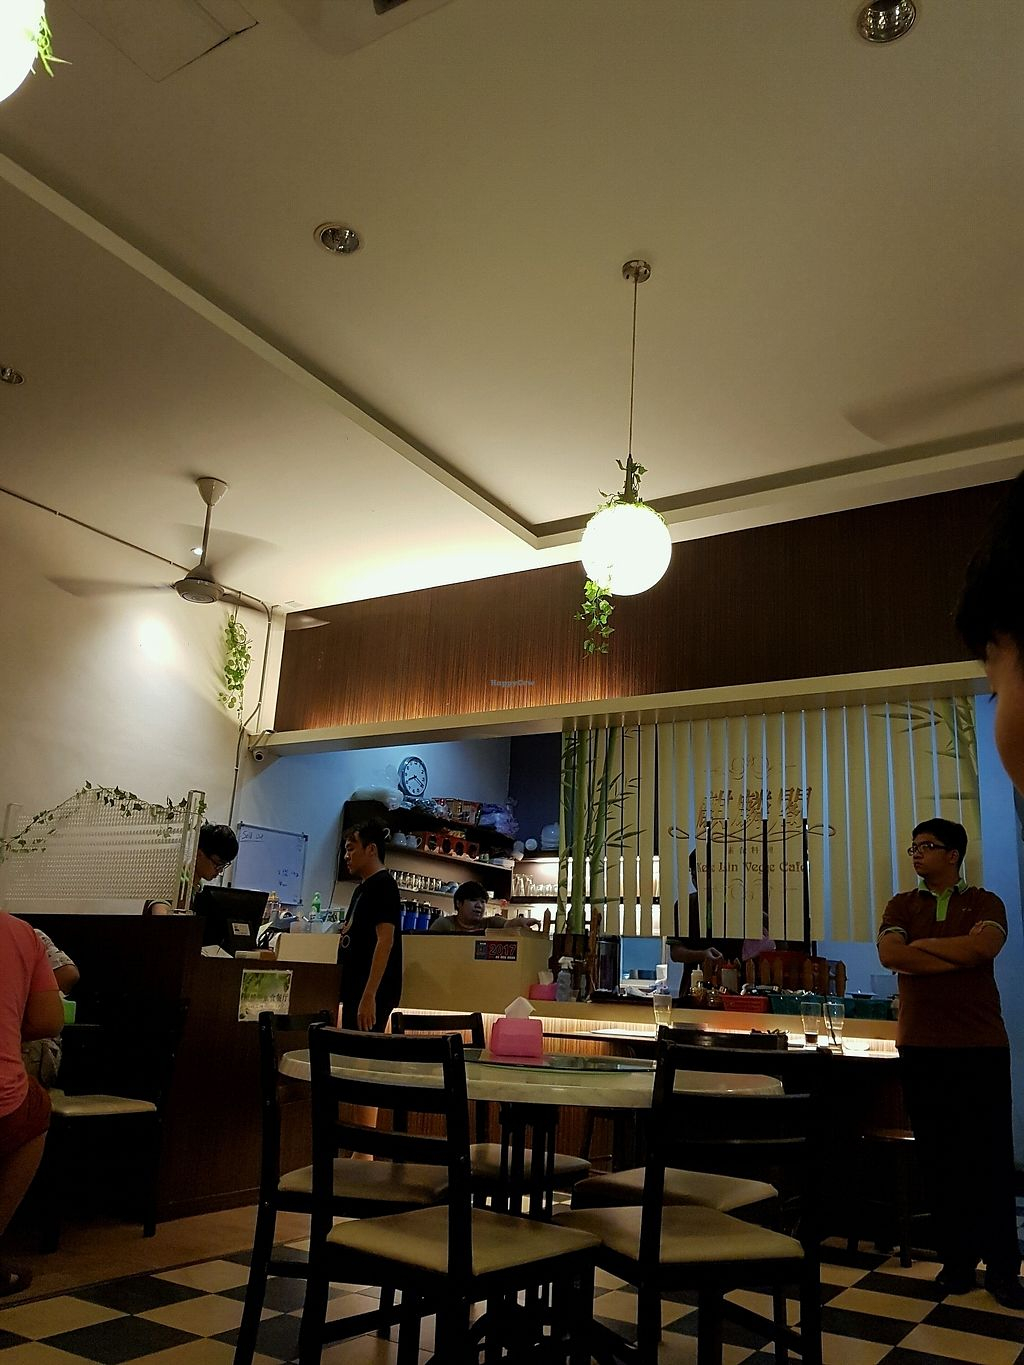 """Photo of Kee Lin Vege Cafe  by <a href=""""/members/profile/Raycklim01%40gmail.com"""">Raycklim01@gmail.com</a> <br/>comfortable  <br/> September 4, 2017  - <a href='/contact/abuse/image/60552/300798'>Report</a>"""